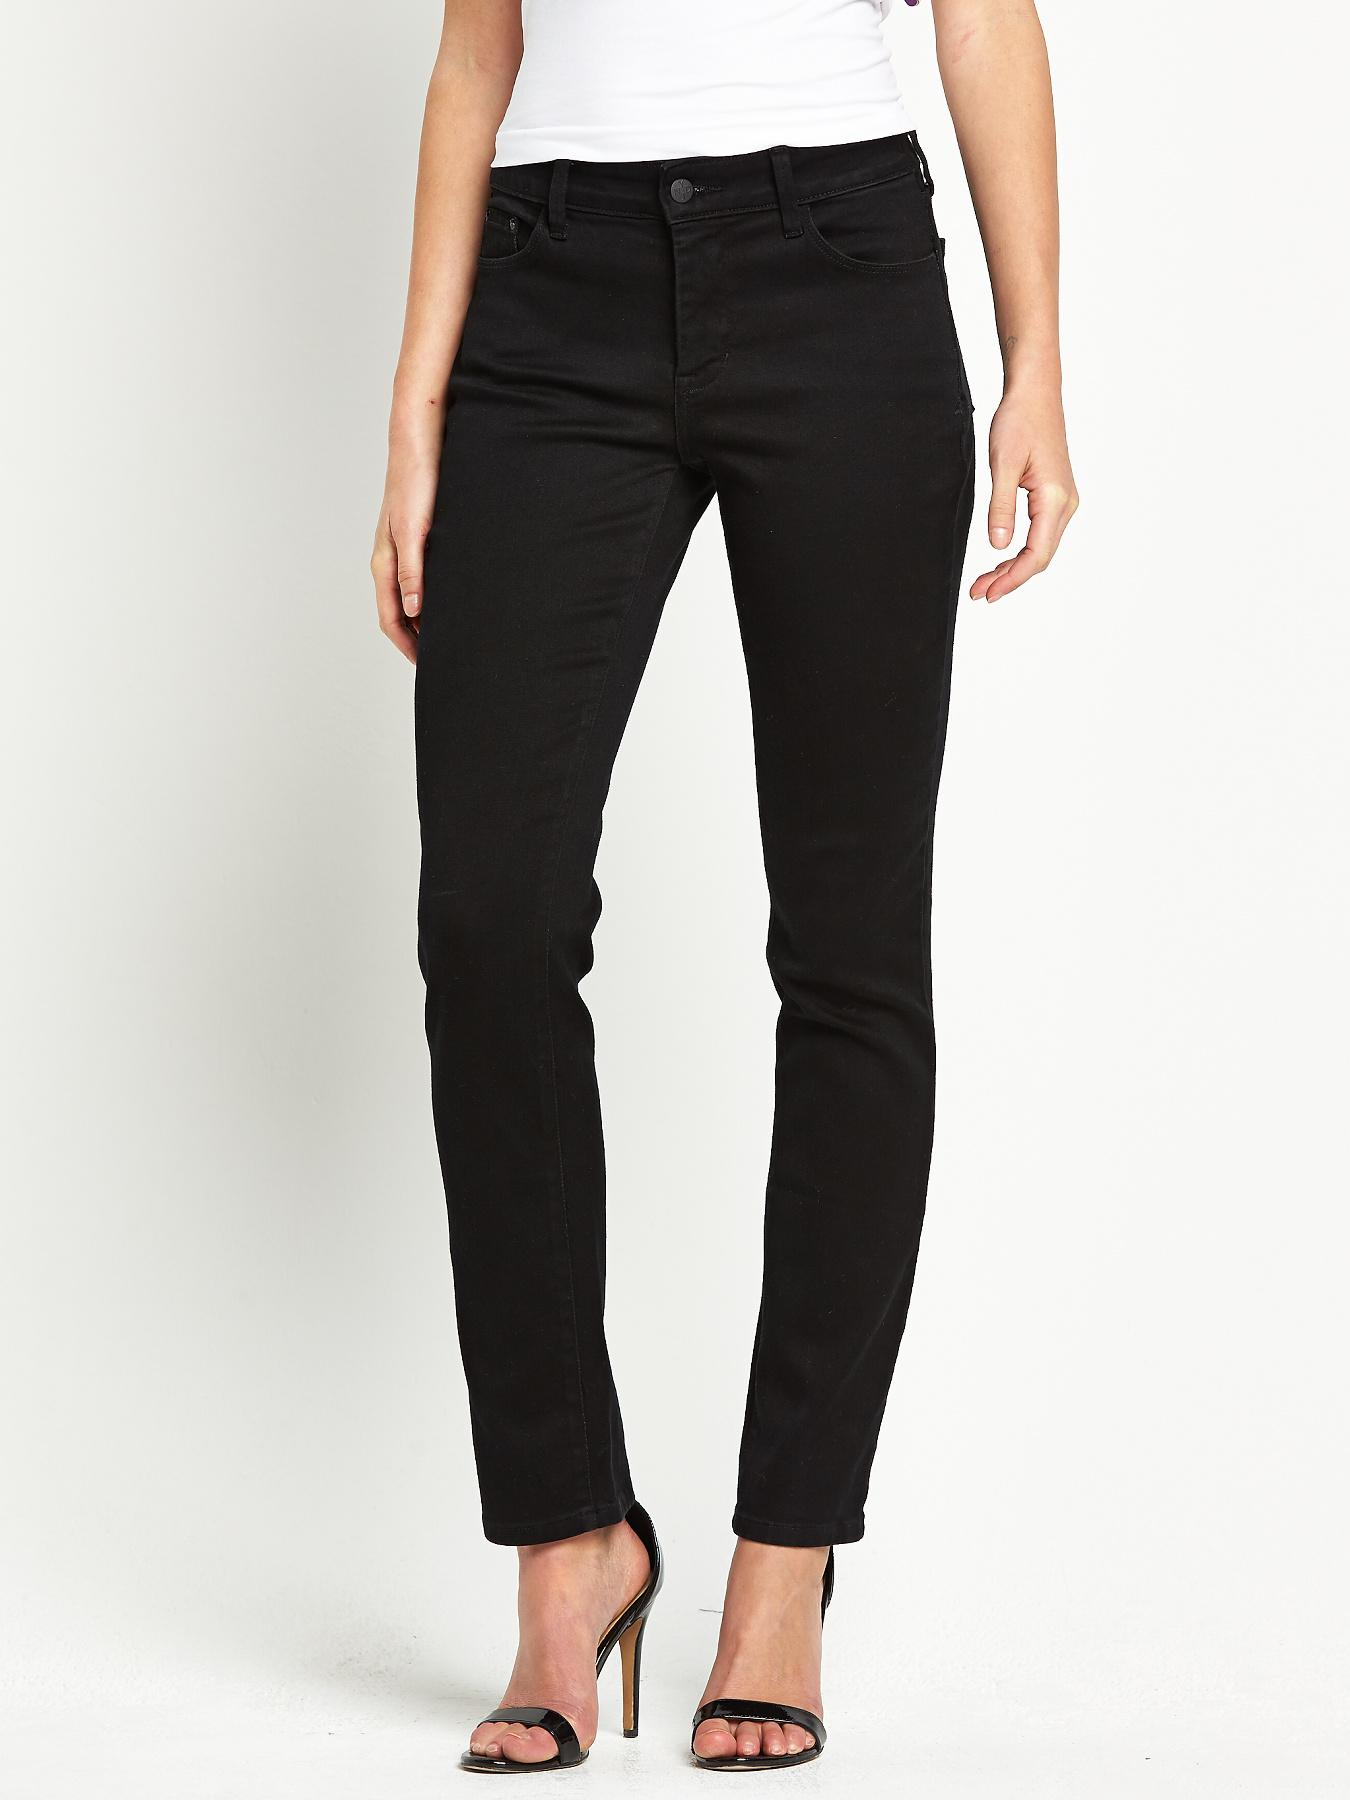 NYDJ High Waisted Super Stretch Skinny Leg Jeans - Black, Black